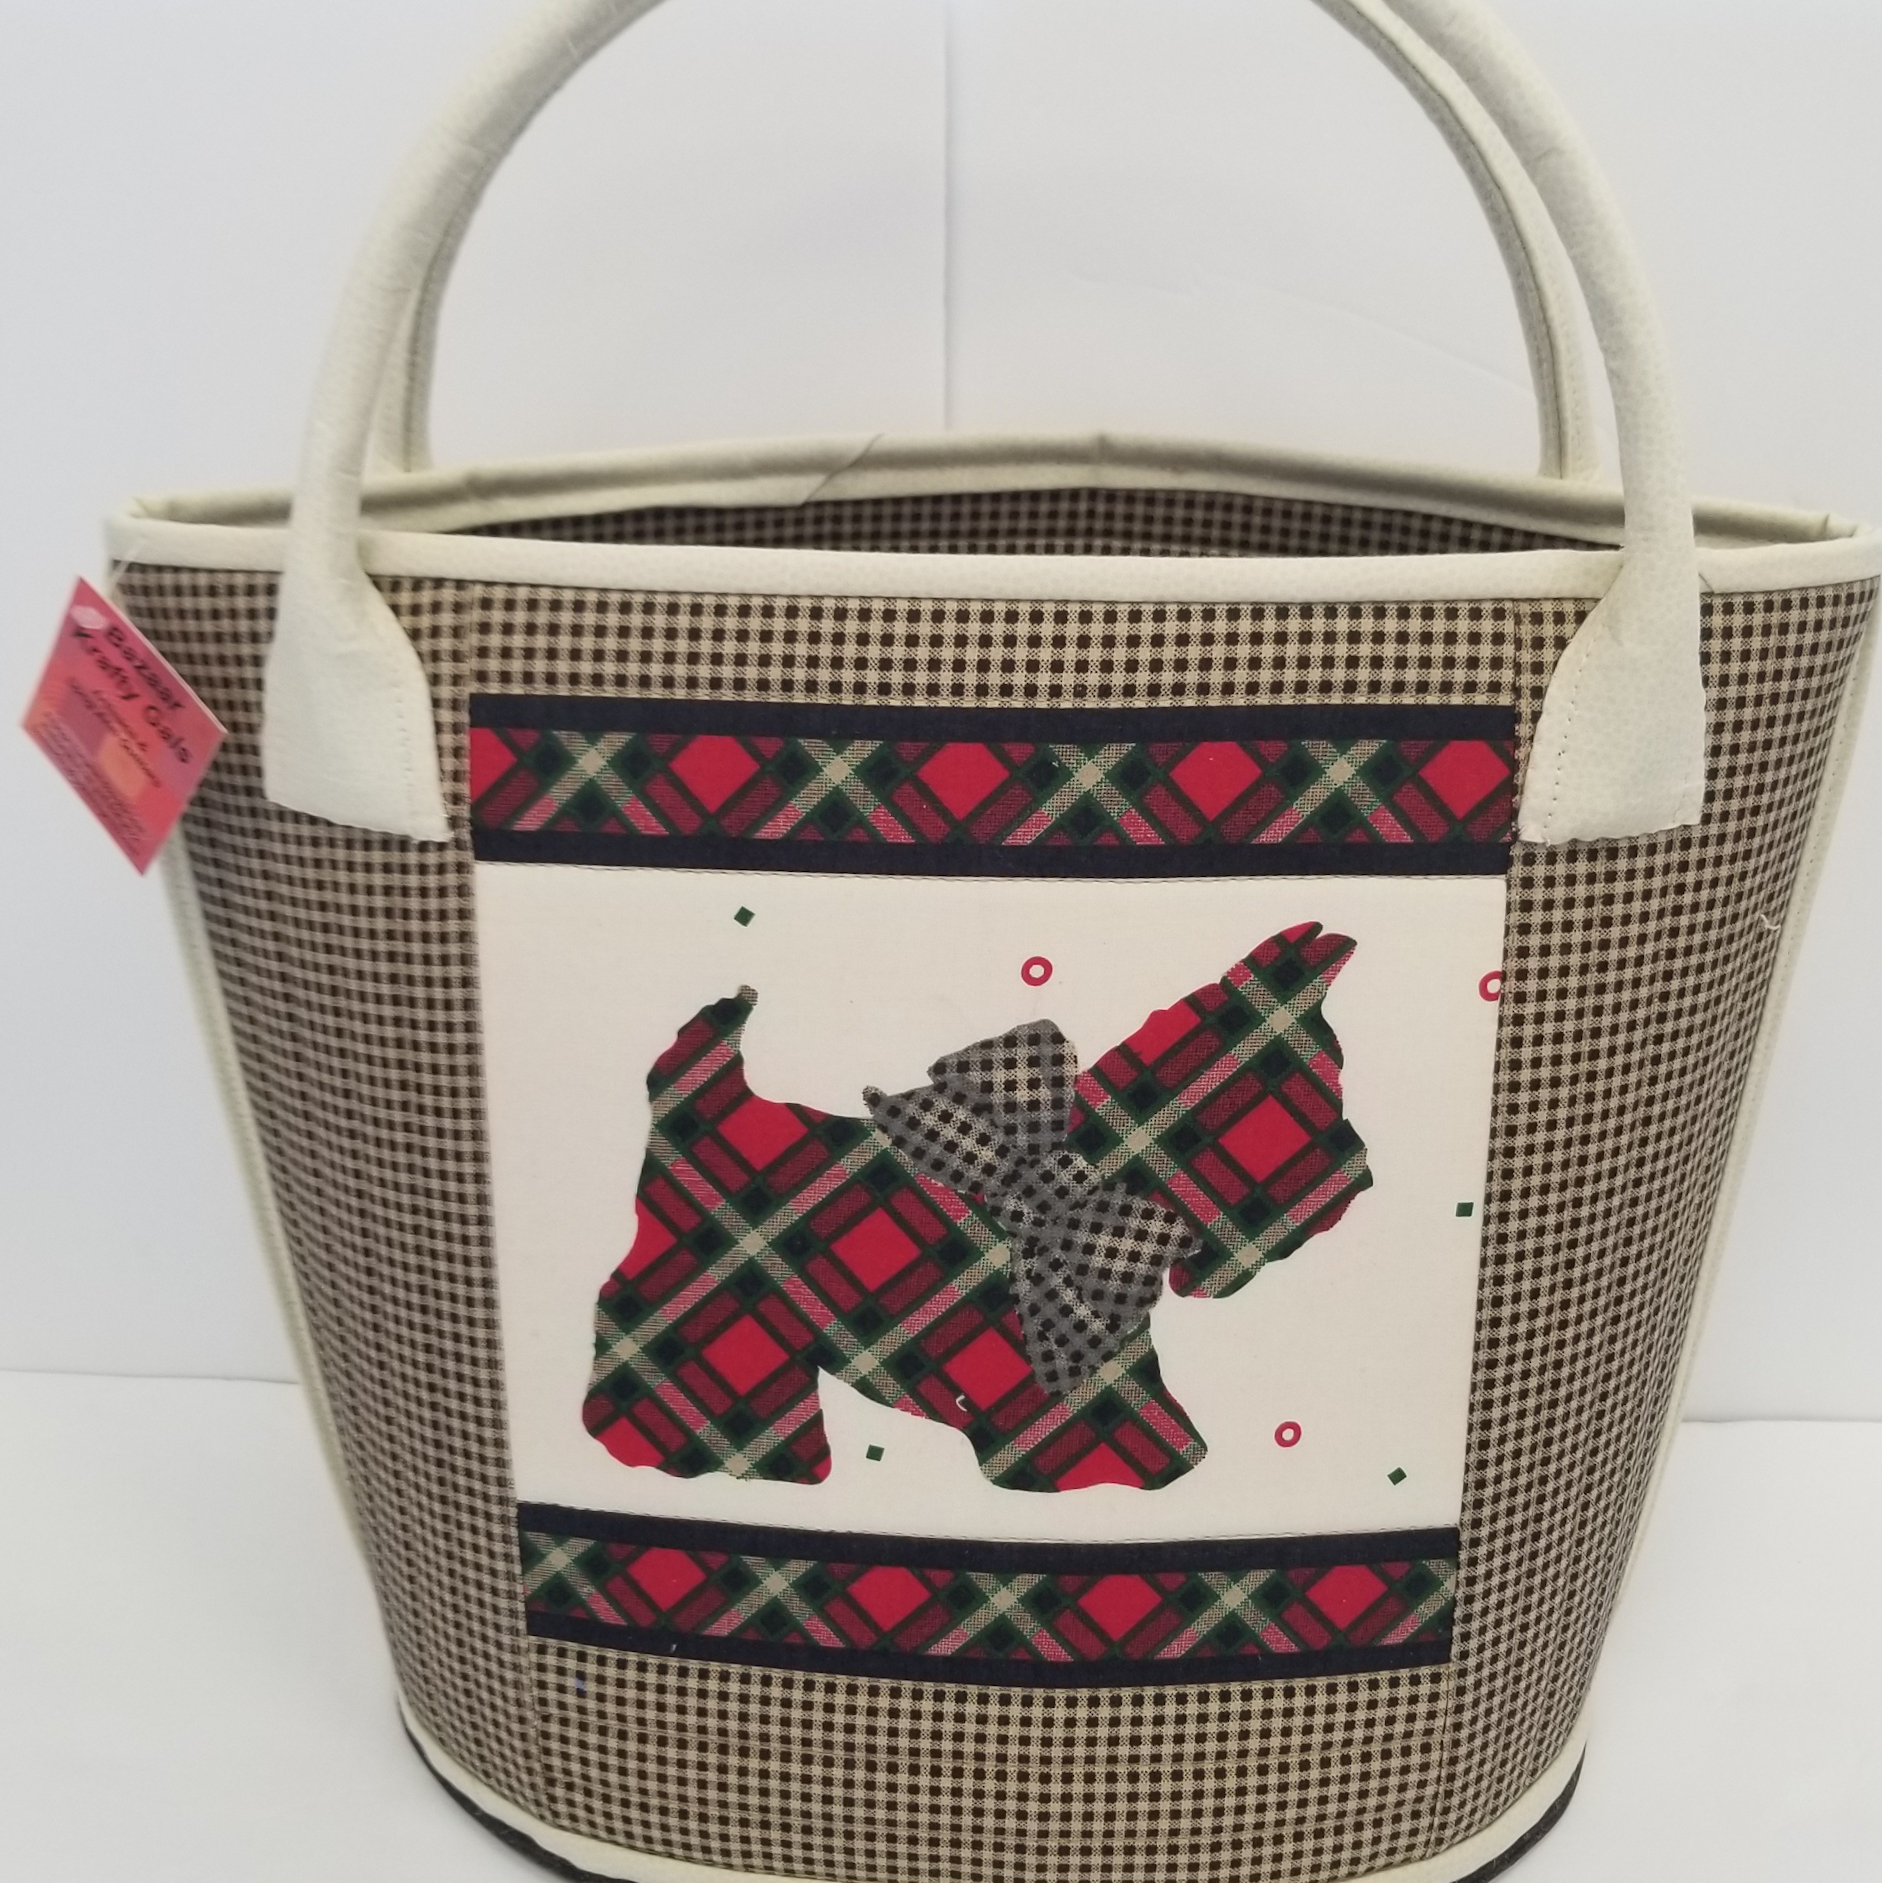 23-Dog Tote - Medium